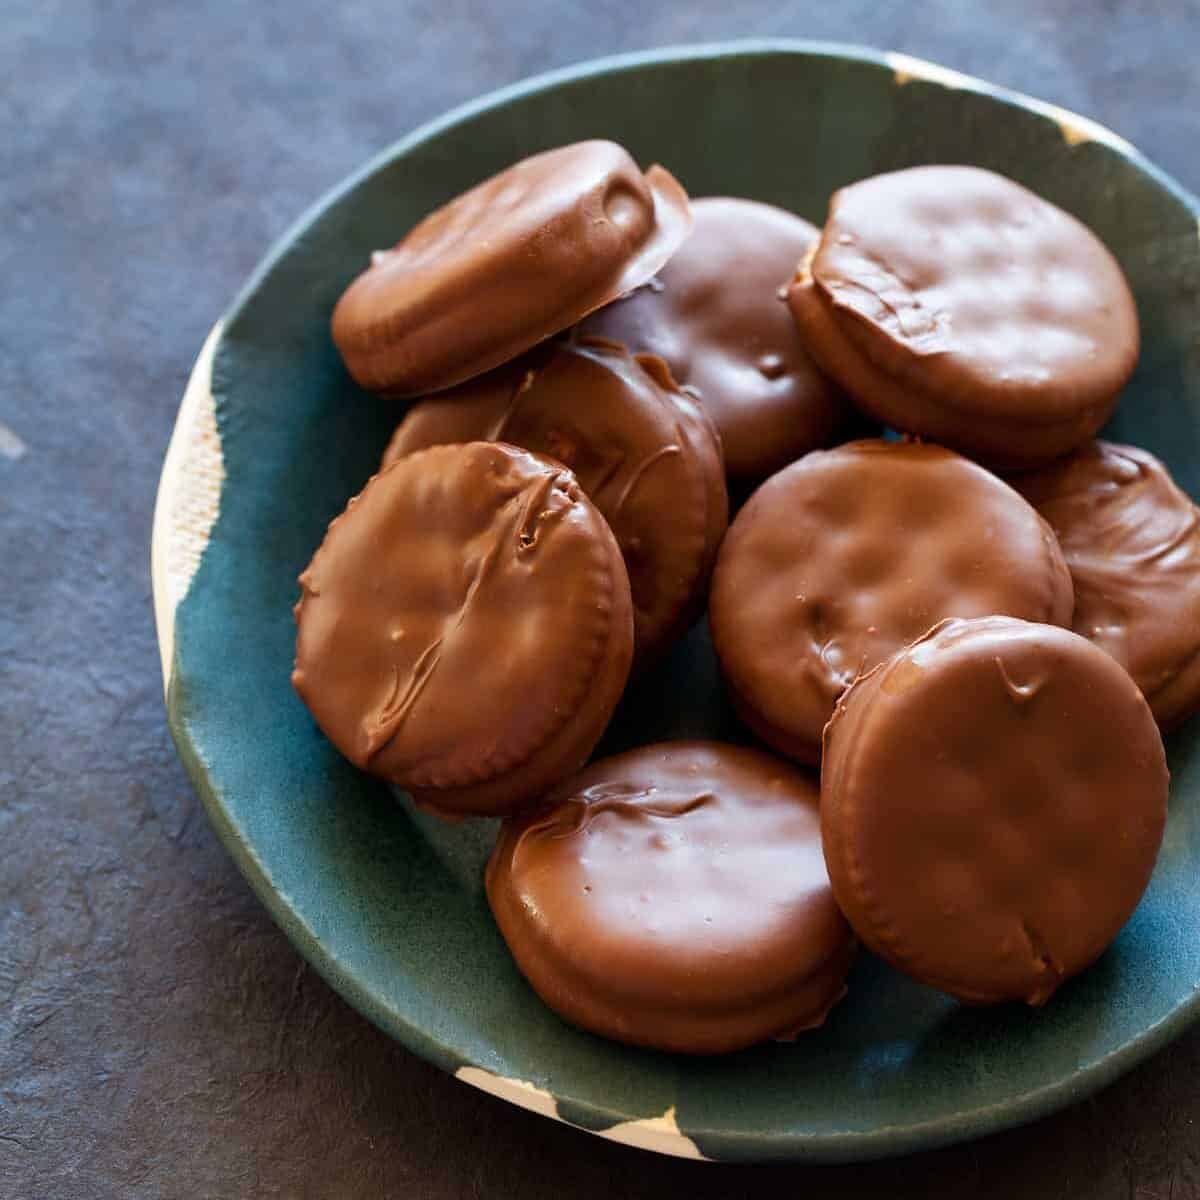 A recipe for Chocolate Covered Peanut Butter Ritz Sandwiches.